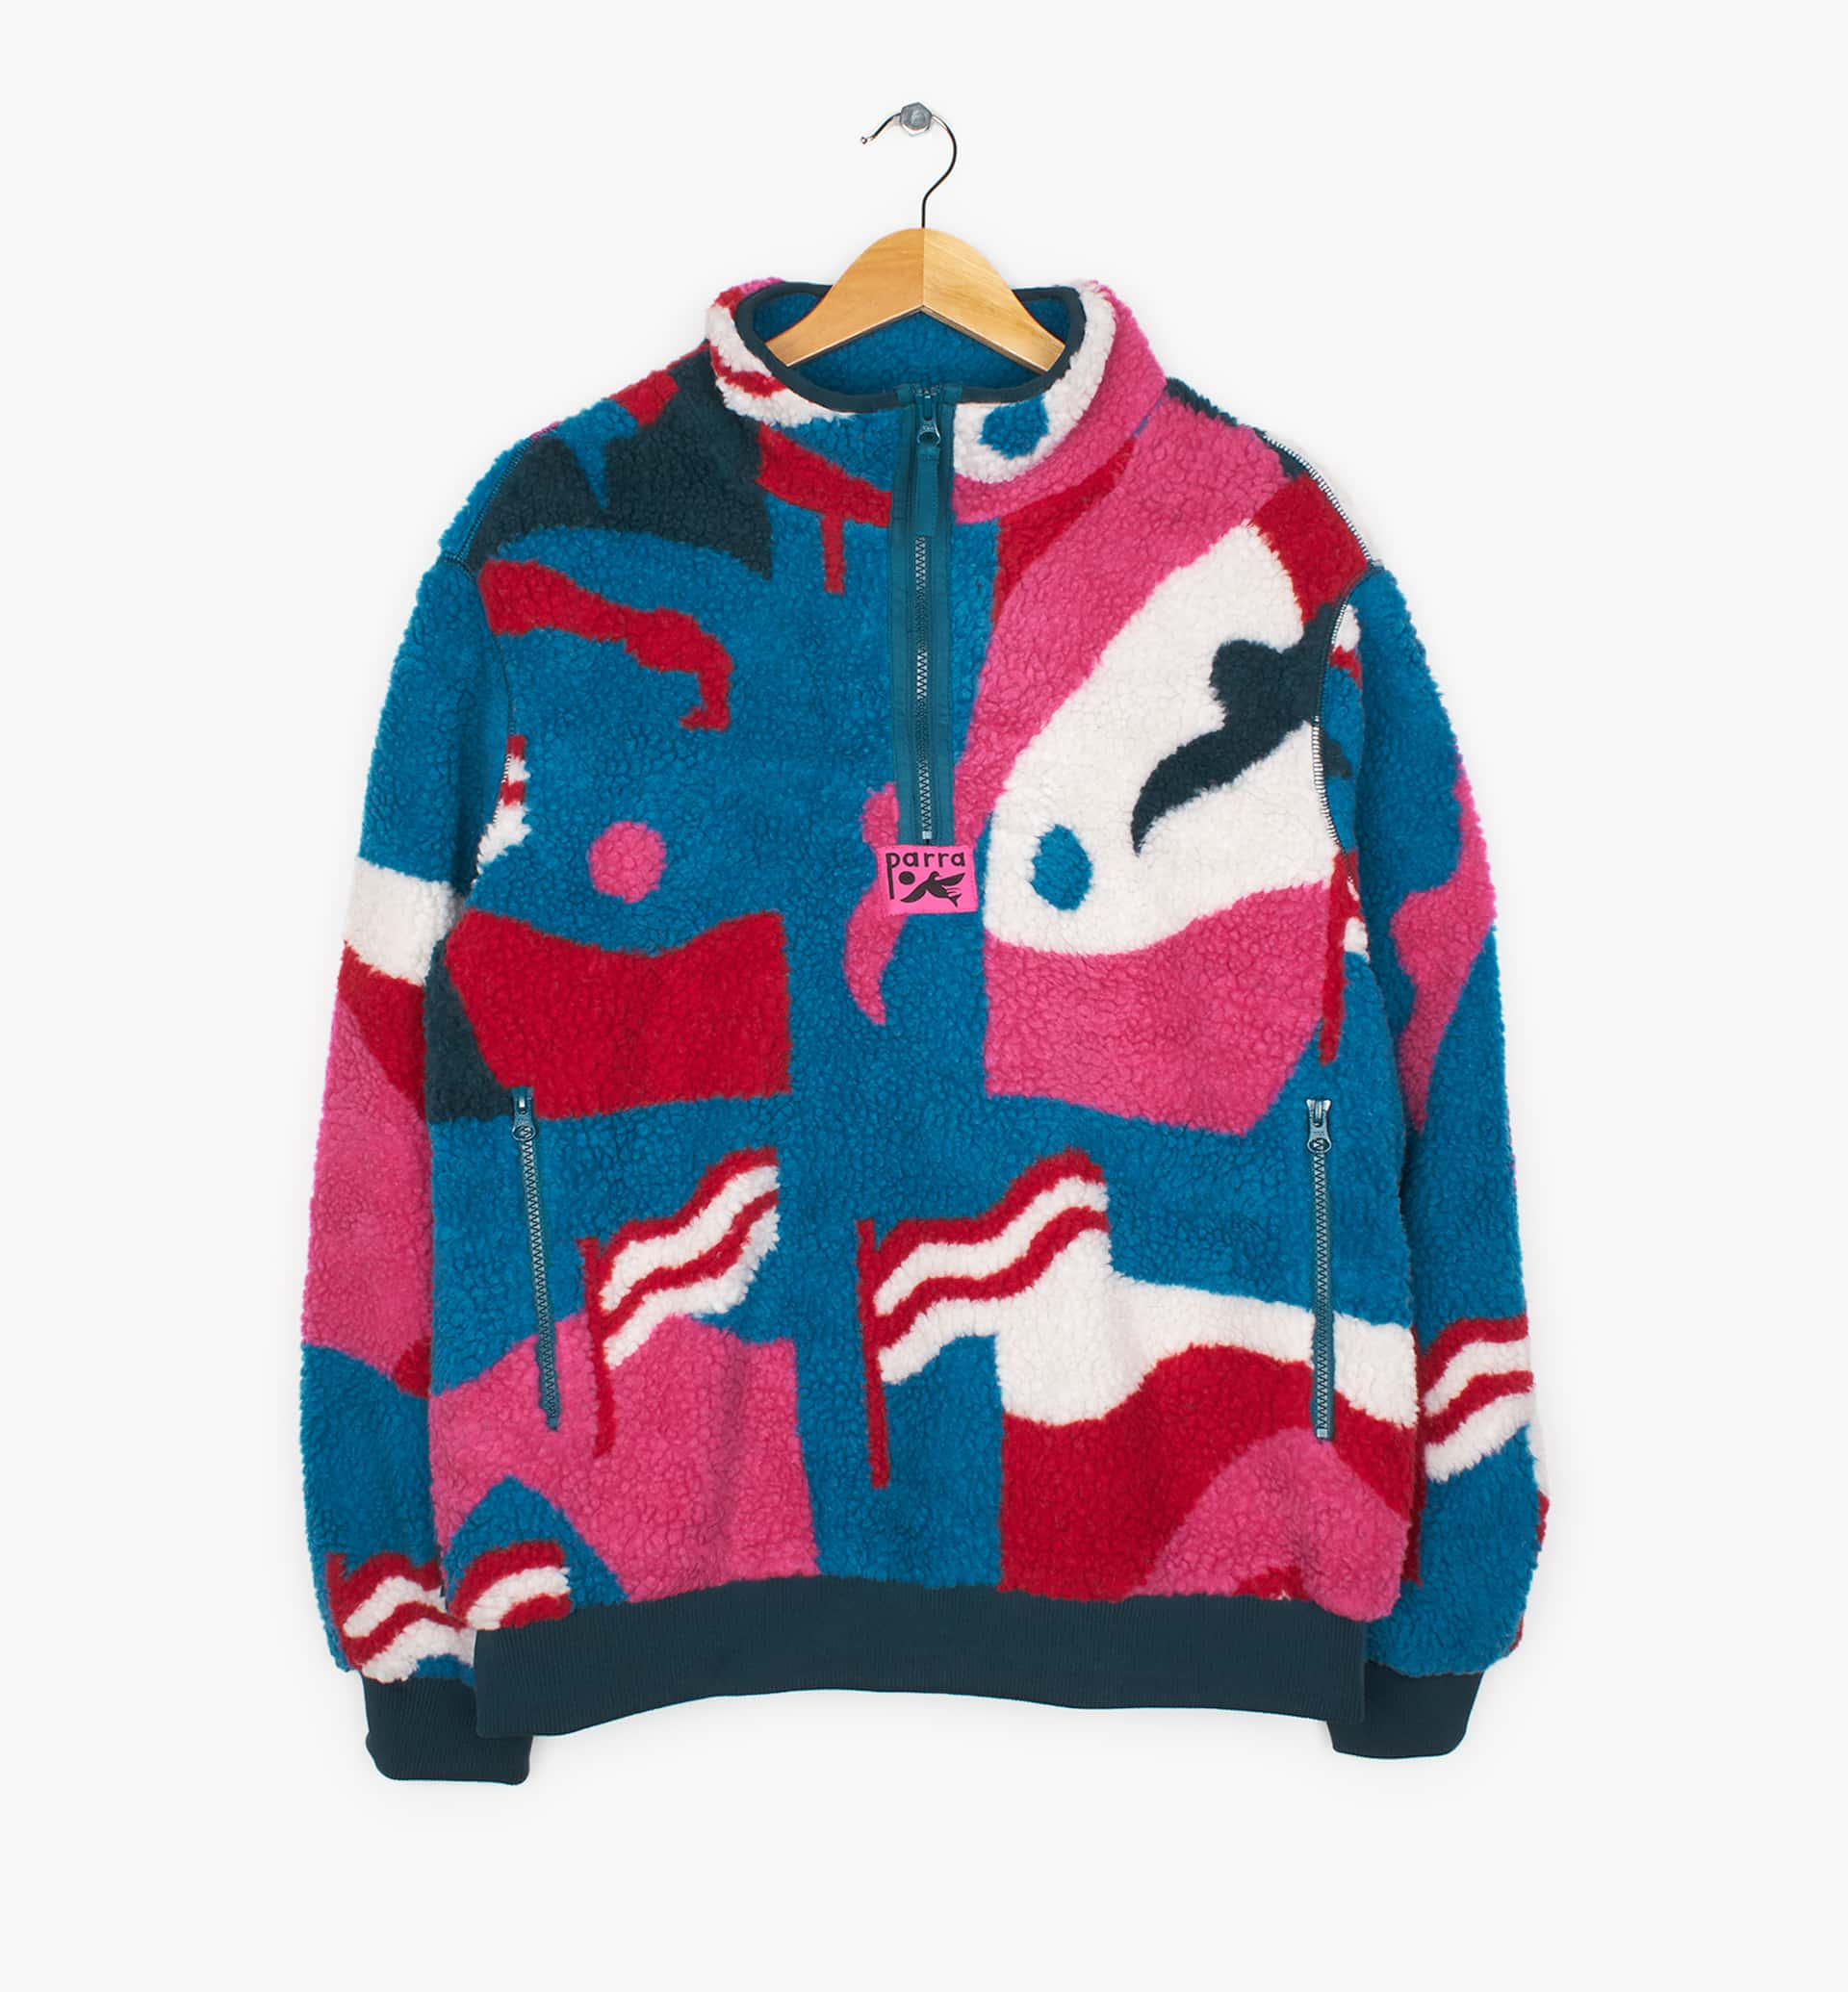 Parra - flag mountain racer sherpa fleece pullover